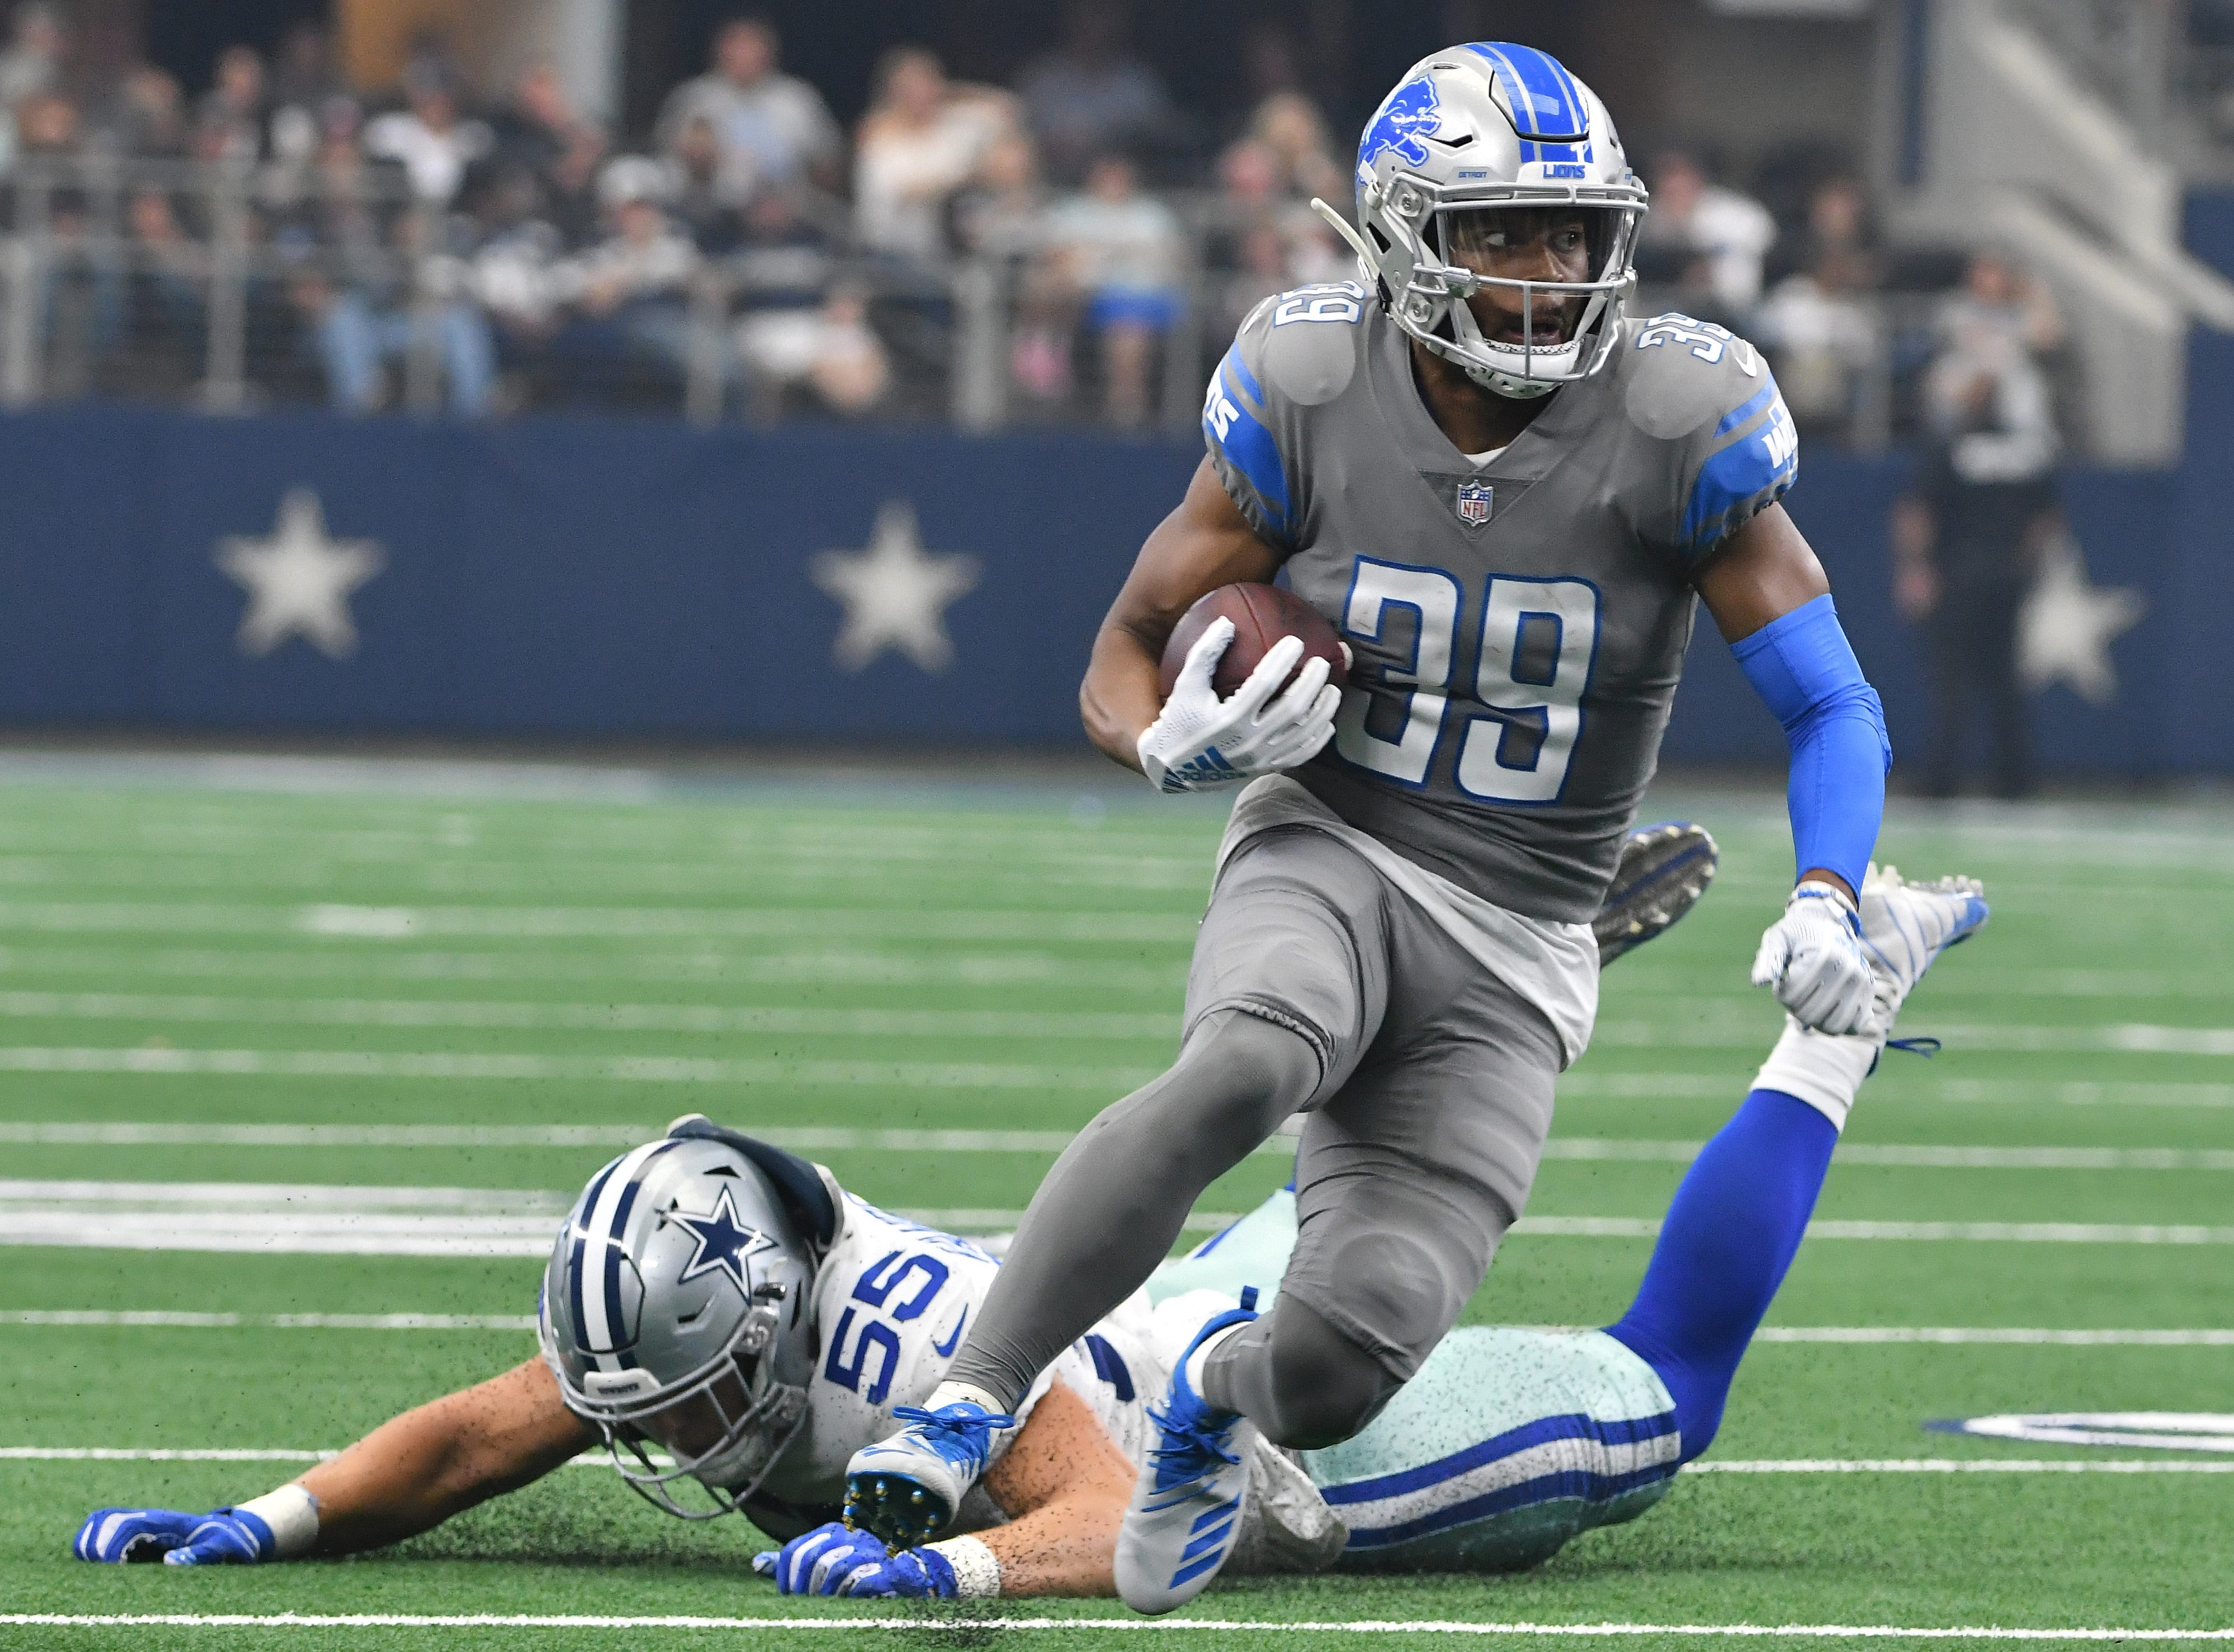 CB Jamal Agnew: Before a season-ending injury, the Lions were giving Agnew increased playing time in the slot. Unfortunately, the early returns weren't great for the youngster who set records for pass breakups while in college. As a return man, Agnew was a victim of his blocking, prohibiting him from replicating his success from a year ago. Grade: D+